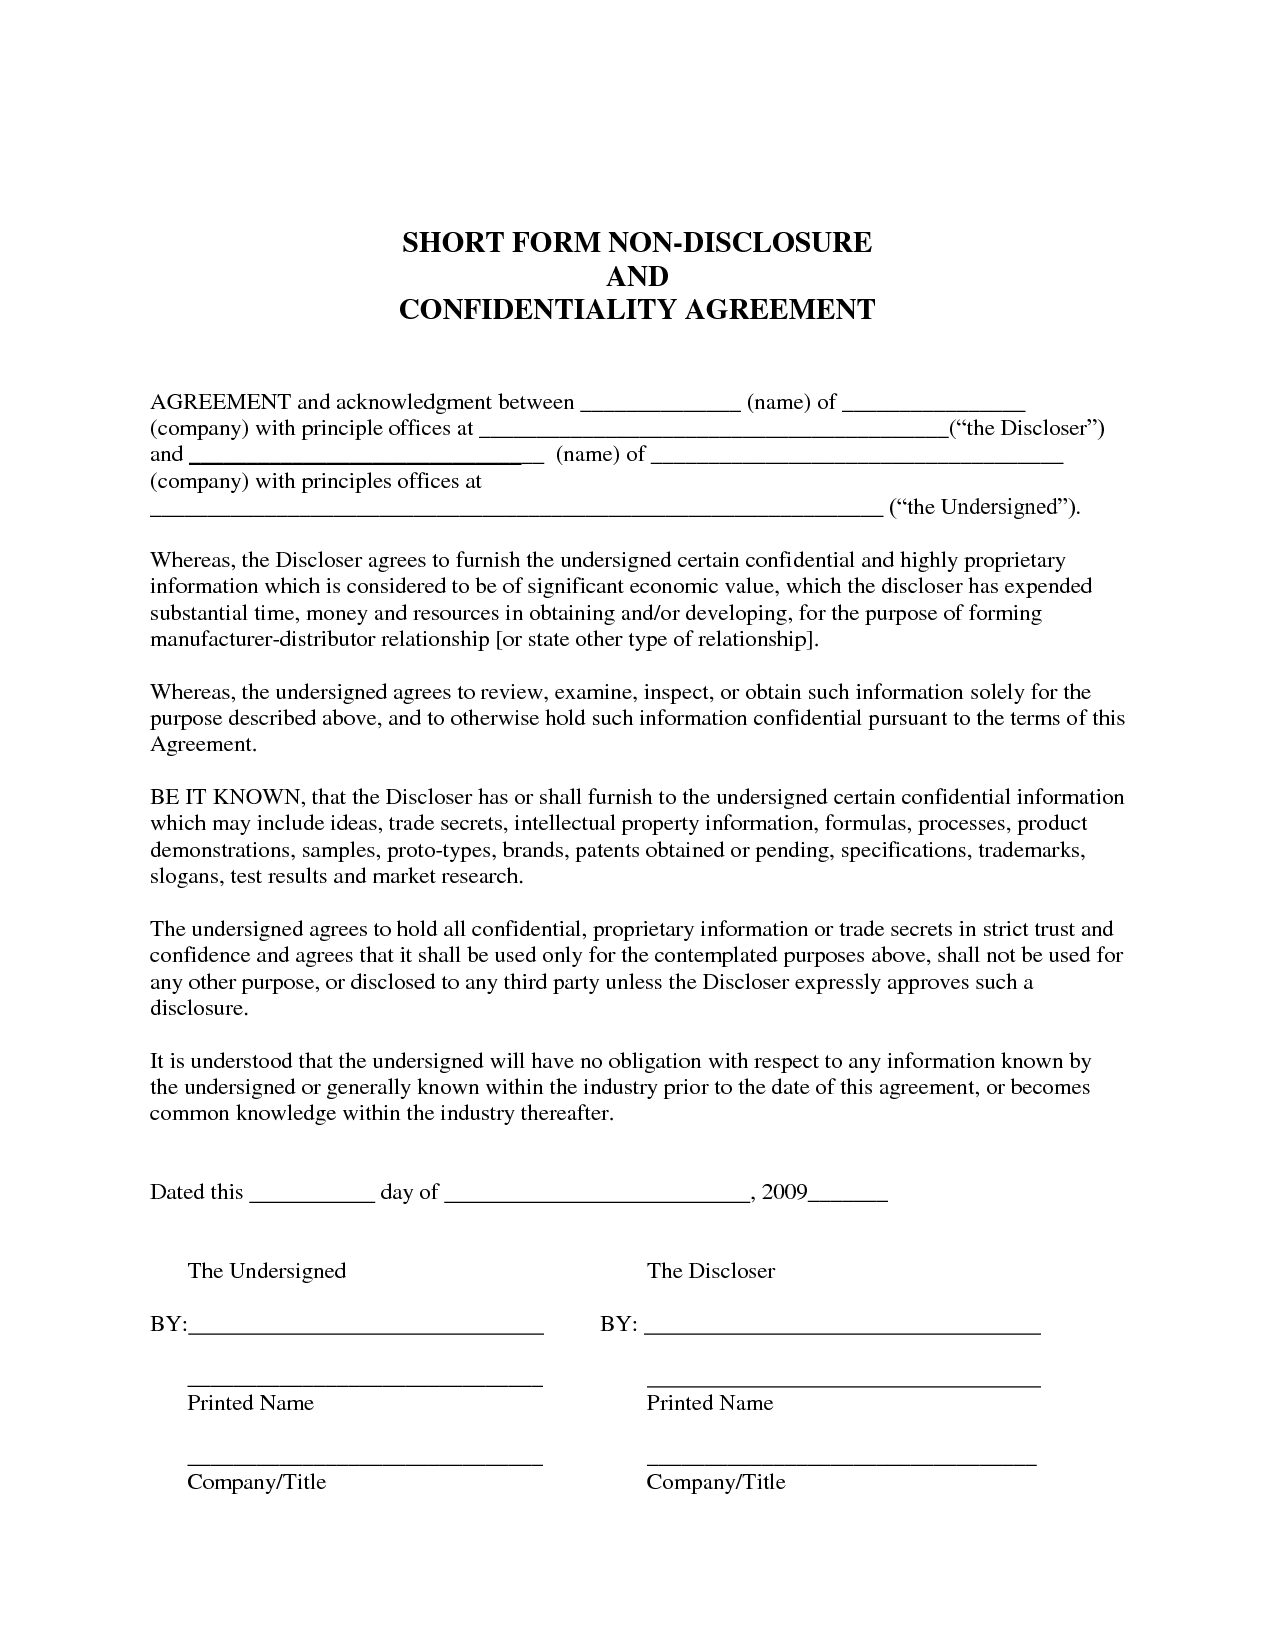 Sample Non Disclosure Agreement | Confidentiality Agreement Sample